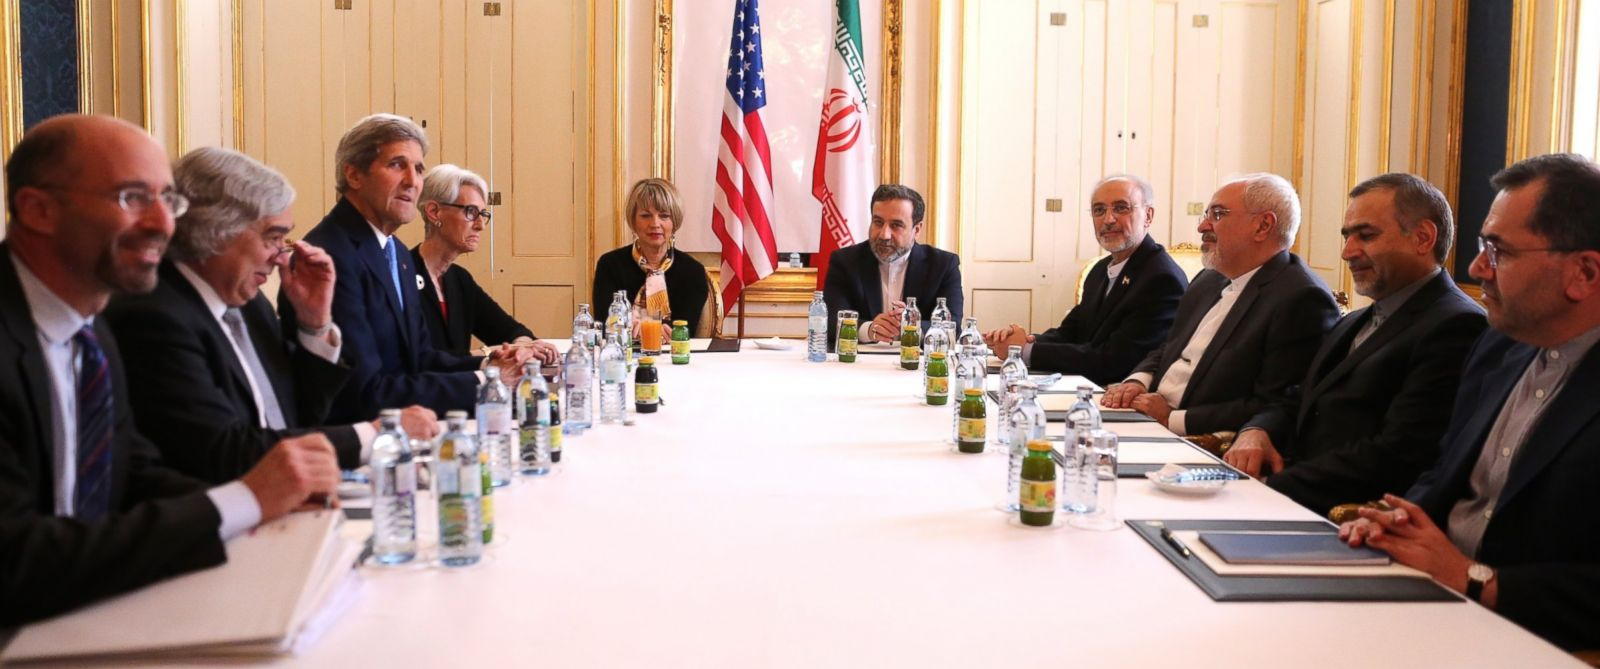 PHOTO: Secretary of State John Kerry and Iranian Foreign Minister Mohammad Javad Zarif attend the Iran nuclear talks at a hotel in Vienna, Austria on June 30, 2015.